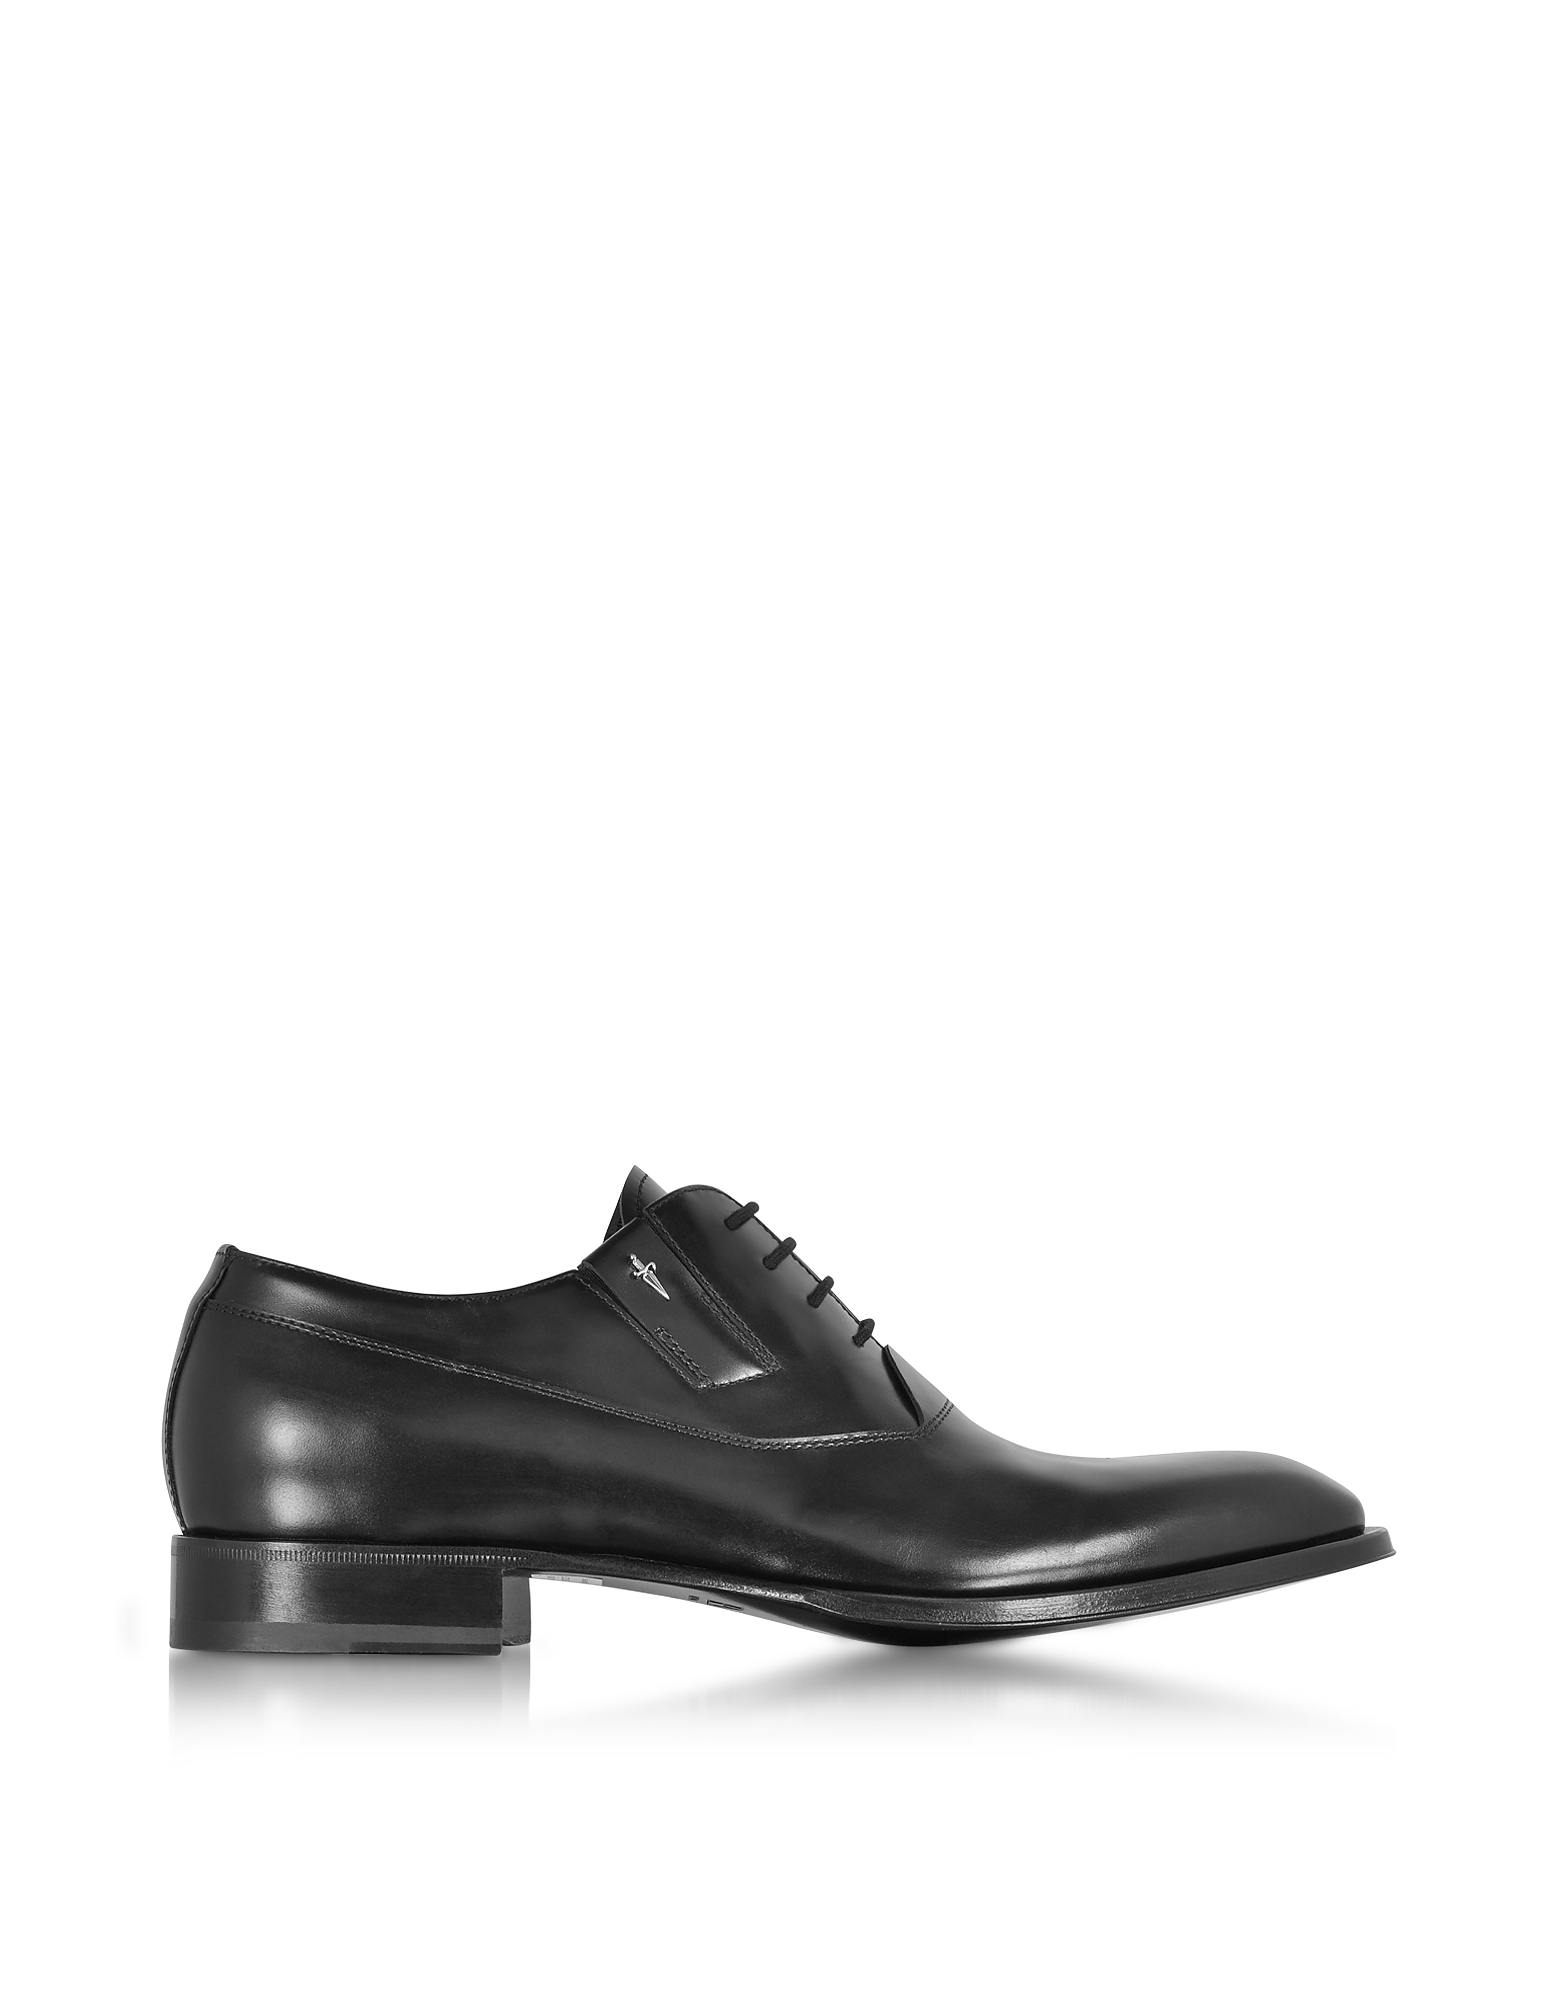 Cesare Paciotti Black Baby Horse Leather Oxford Shoes